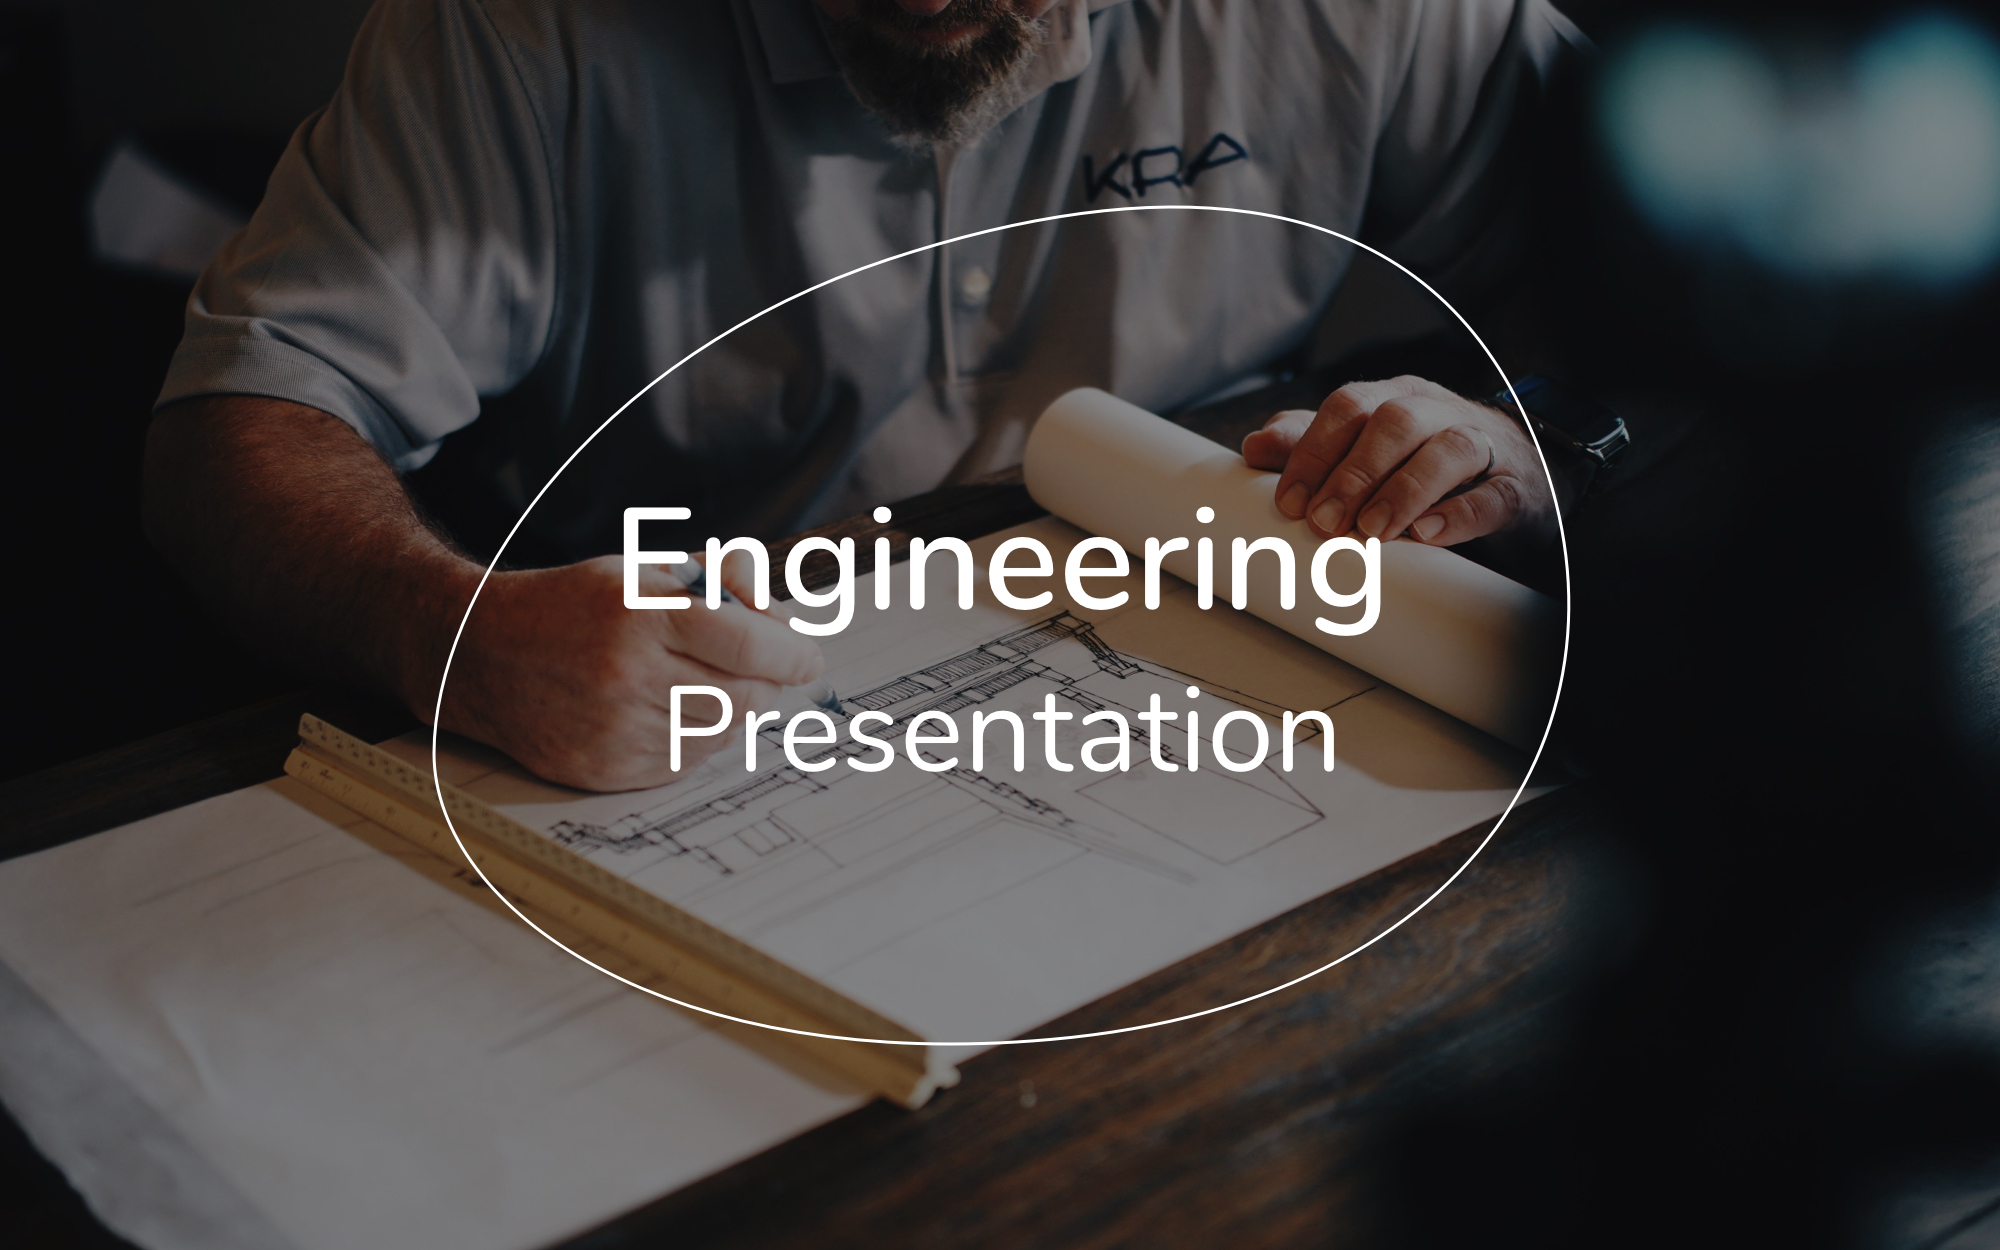 Engineering powerpoint template free pdf ppt download slidebean engineering powerpoint template free pdf ppt download toneelgroepblik Images